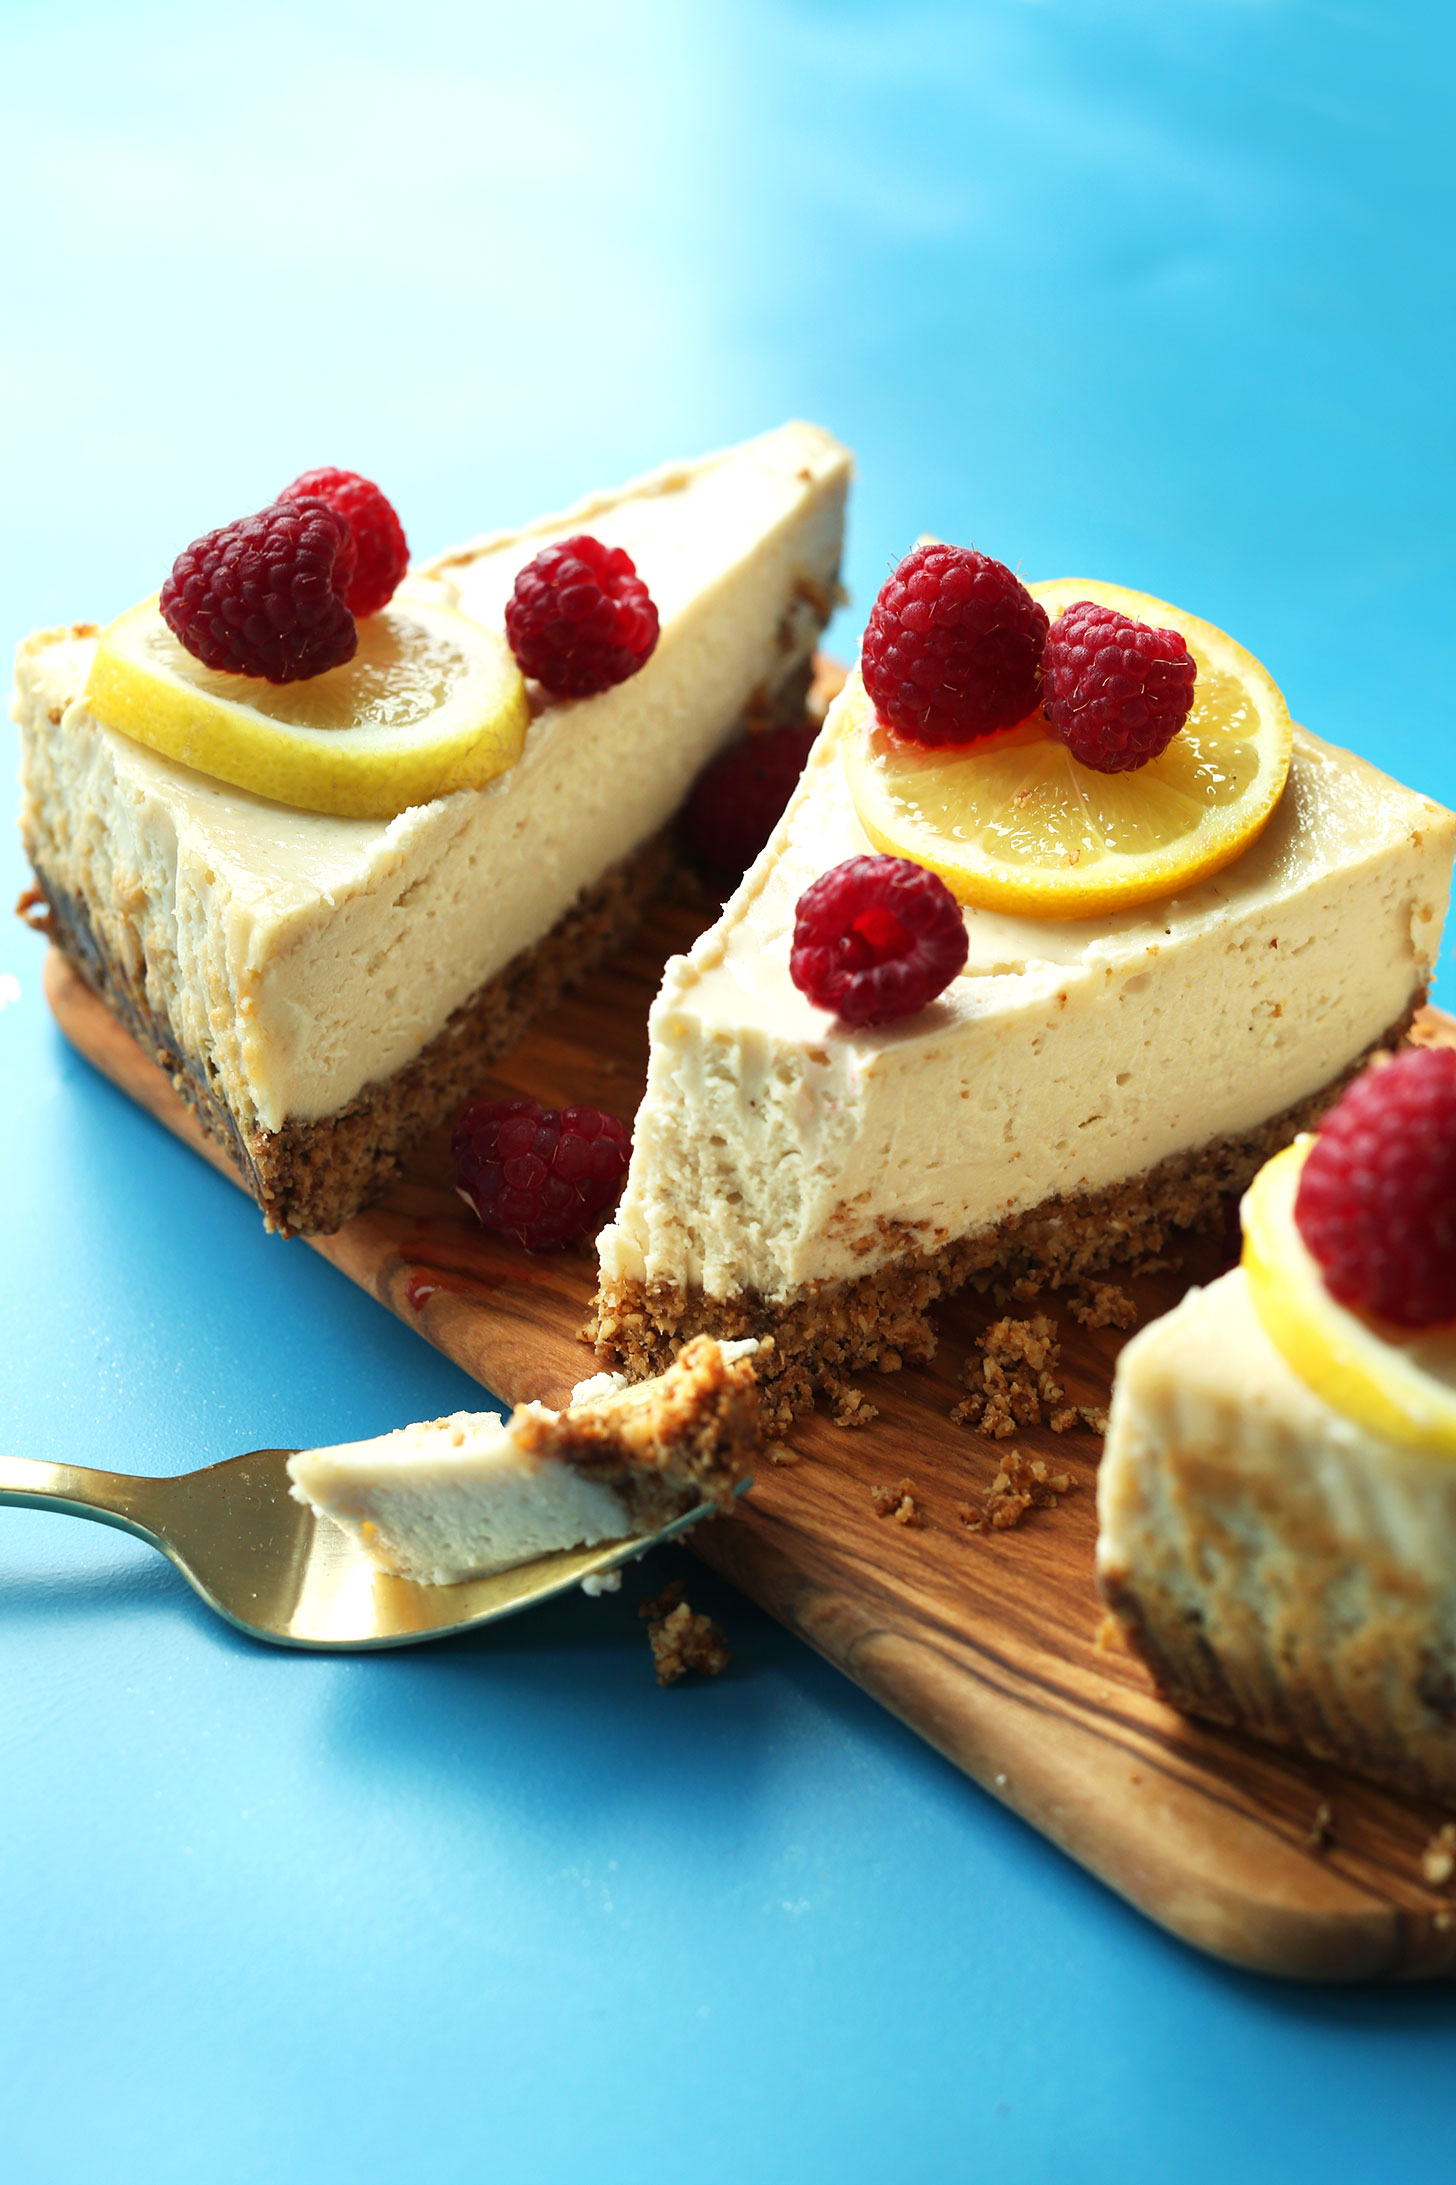 Slices of the best baked vegan gluten-free cheesecake